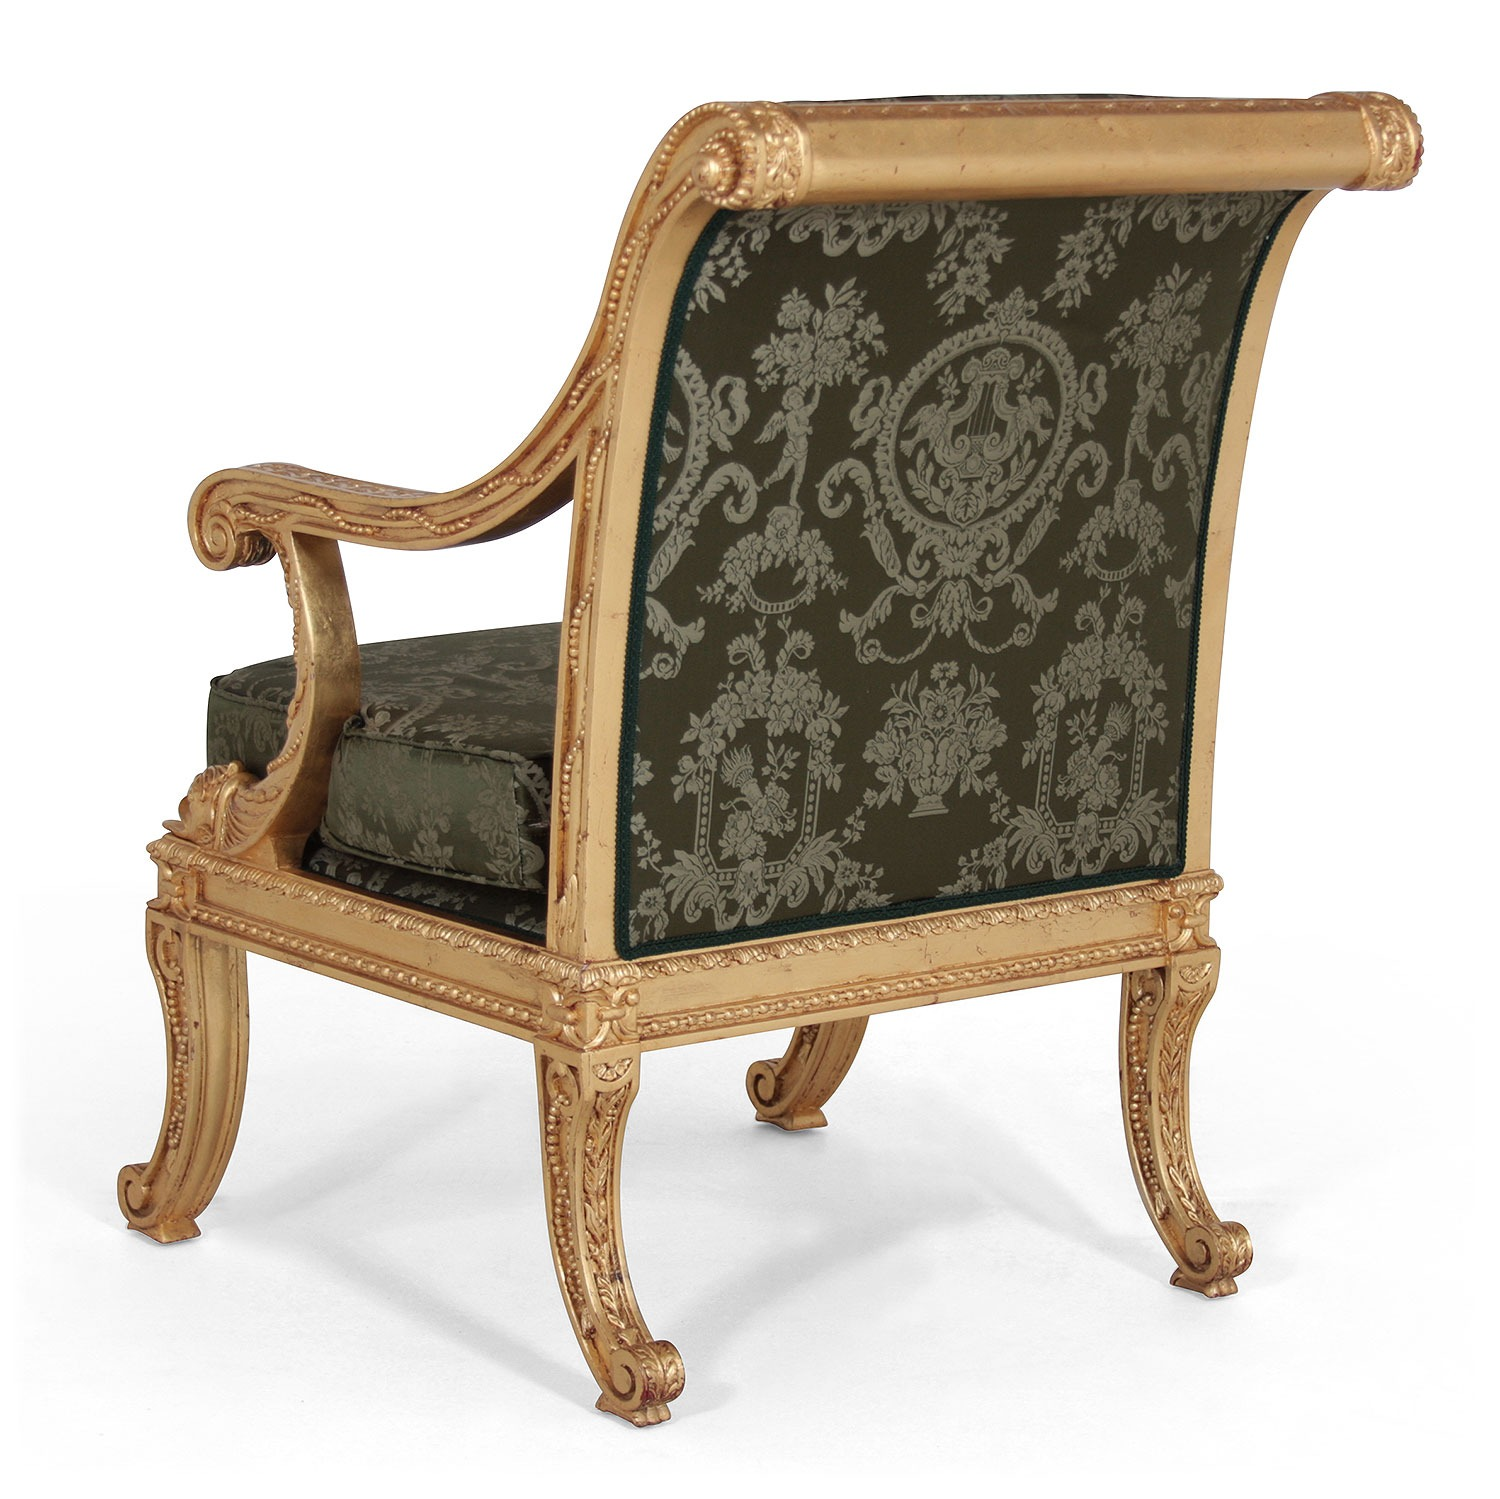 18th Century French style Formal Chair